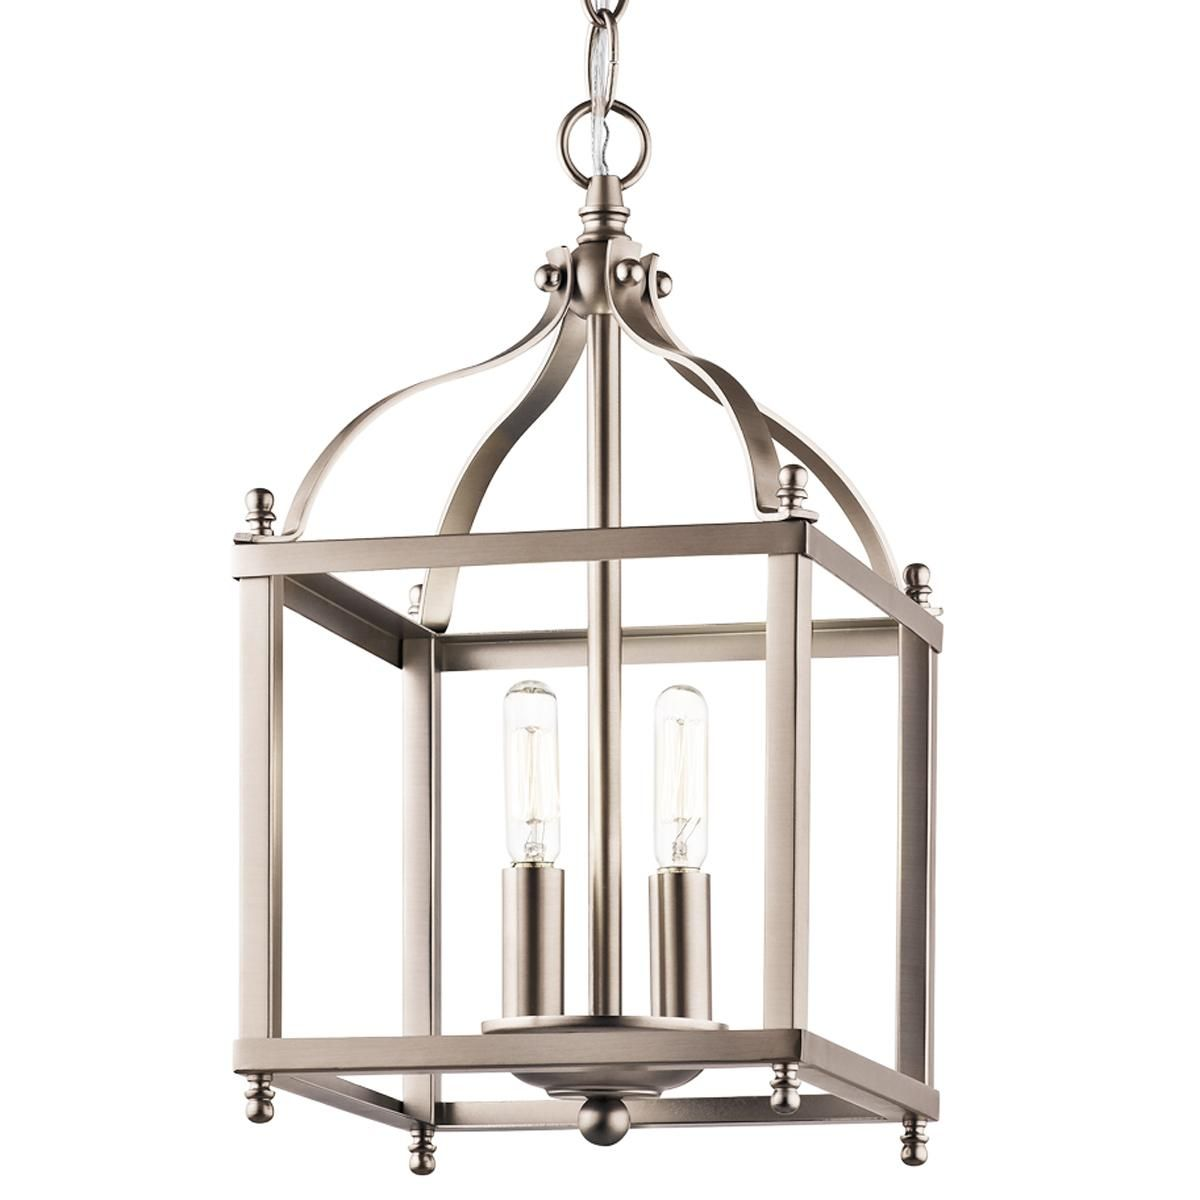 Arched silhouette pendant light foyers island pendants for Over island light fixtures